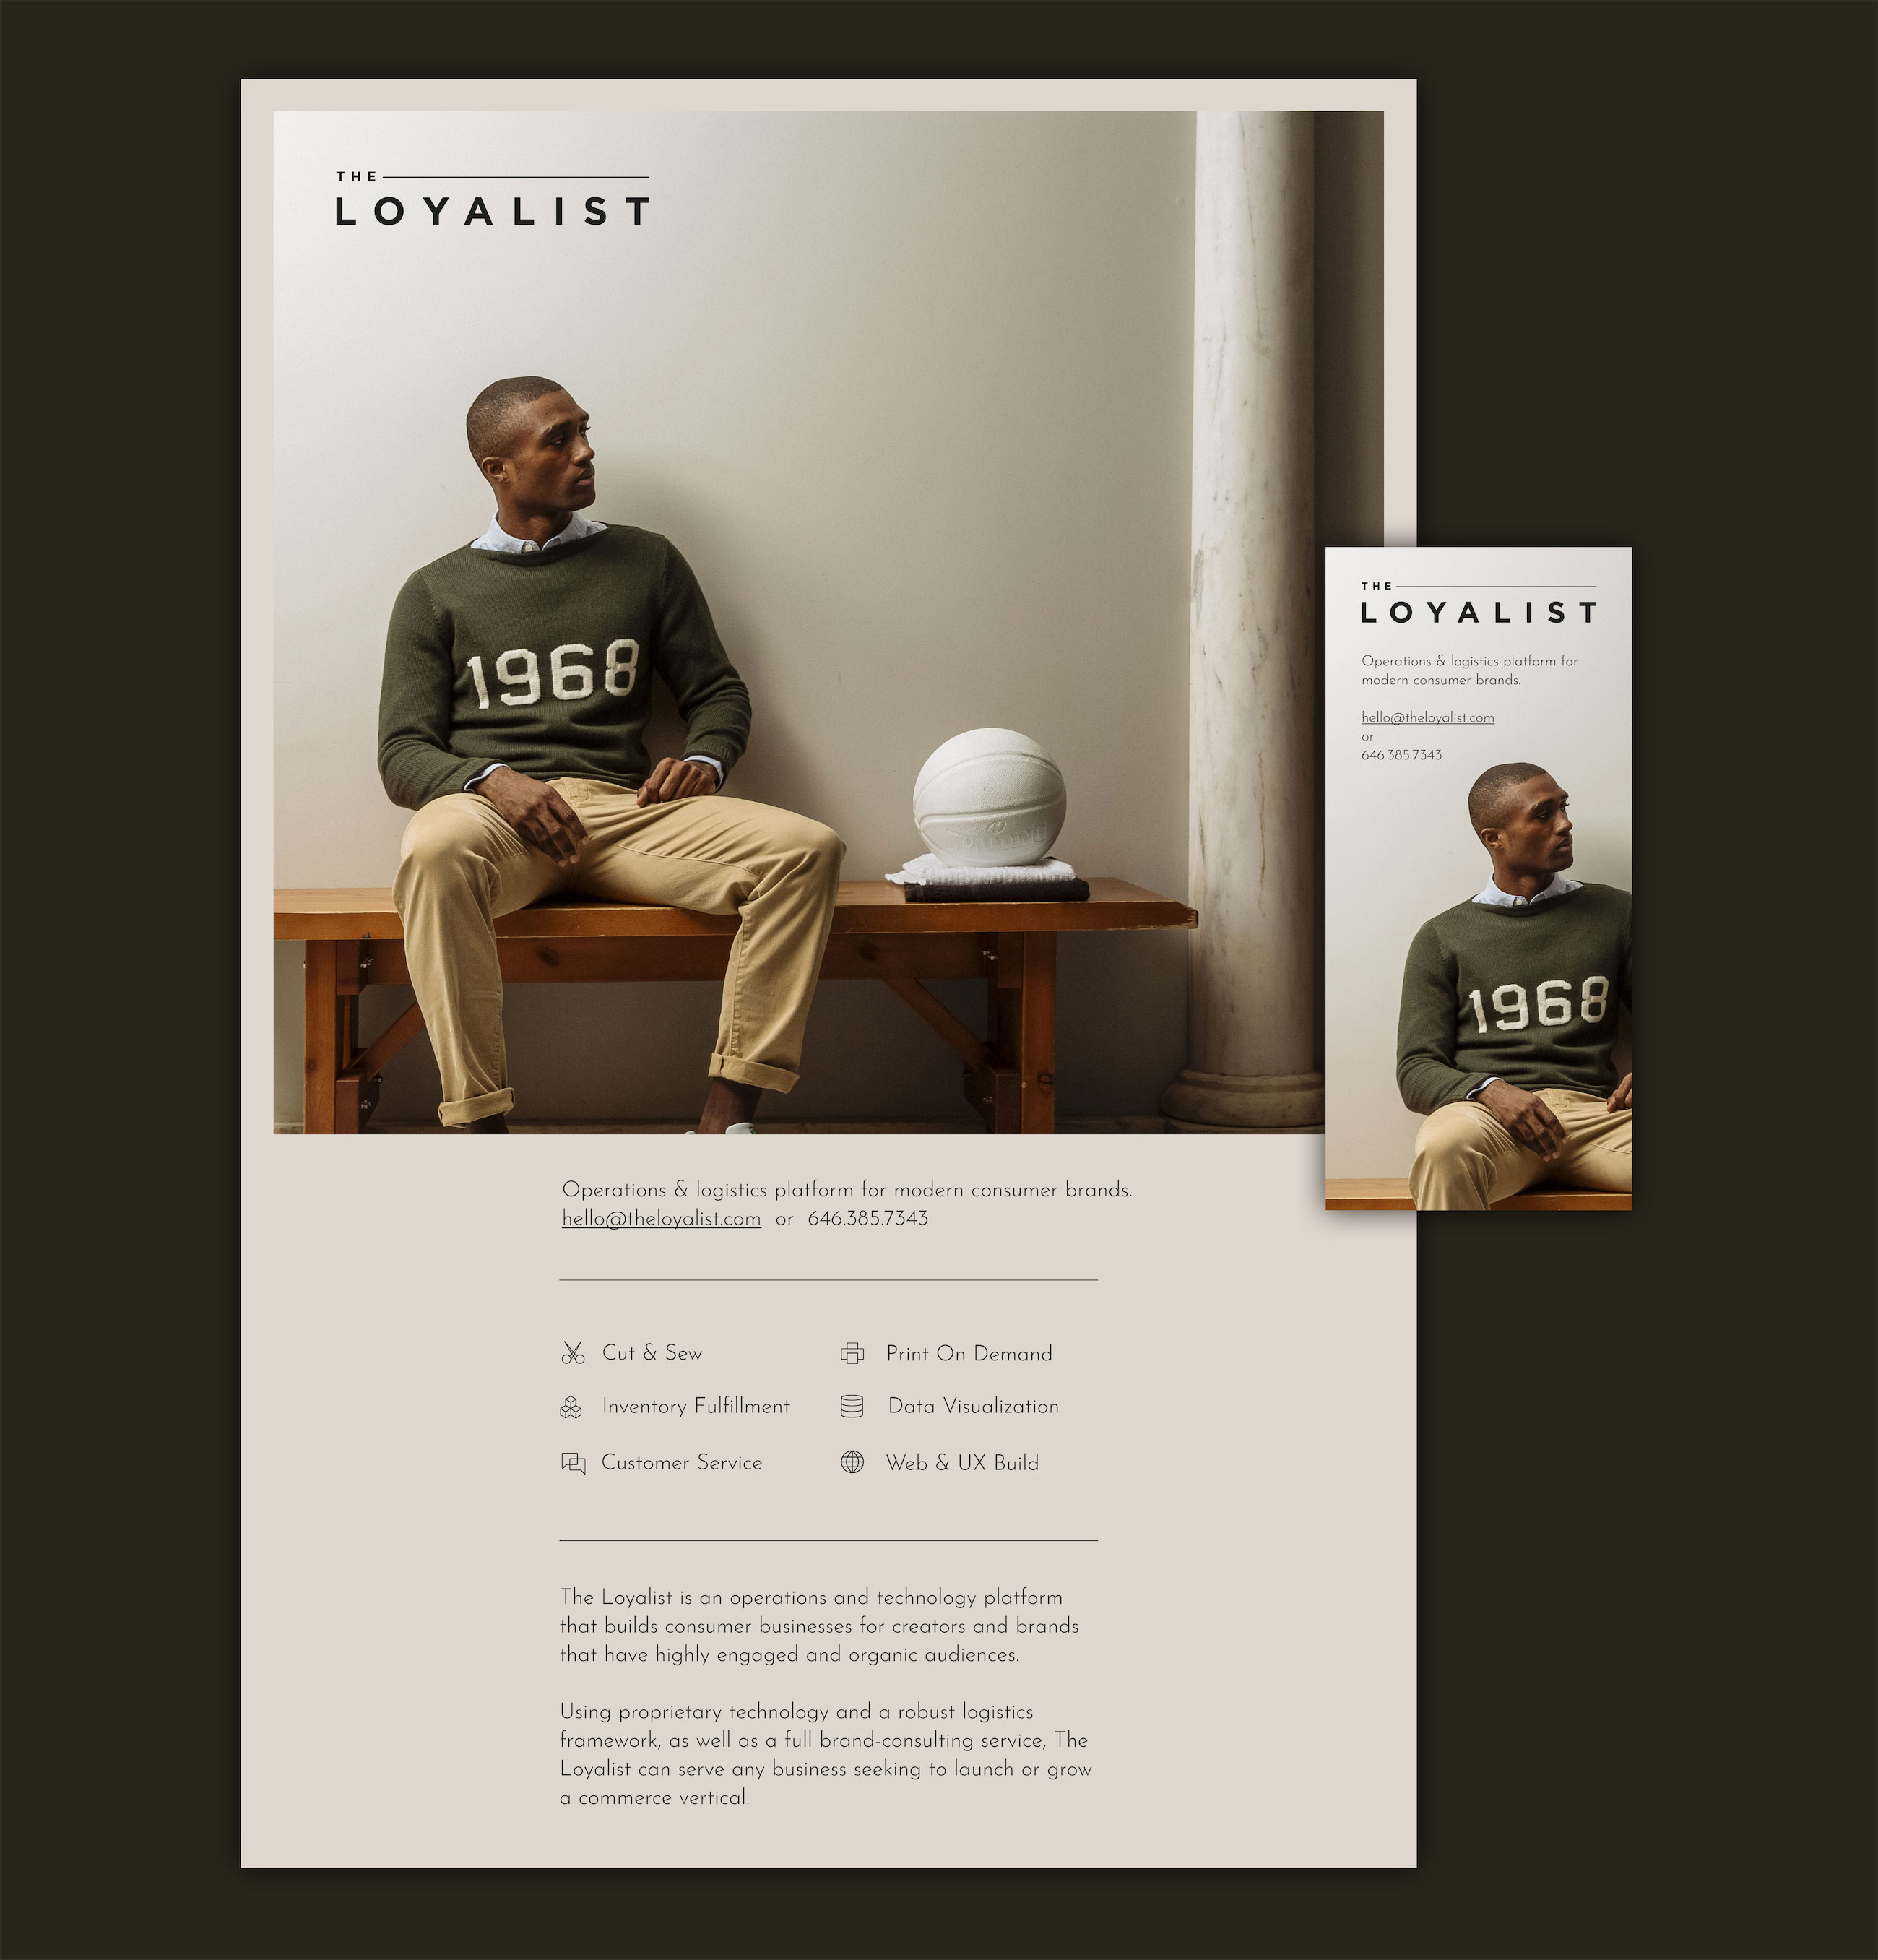 The Loyalist Splash Page Design